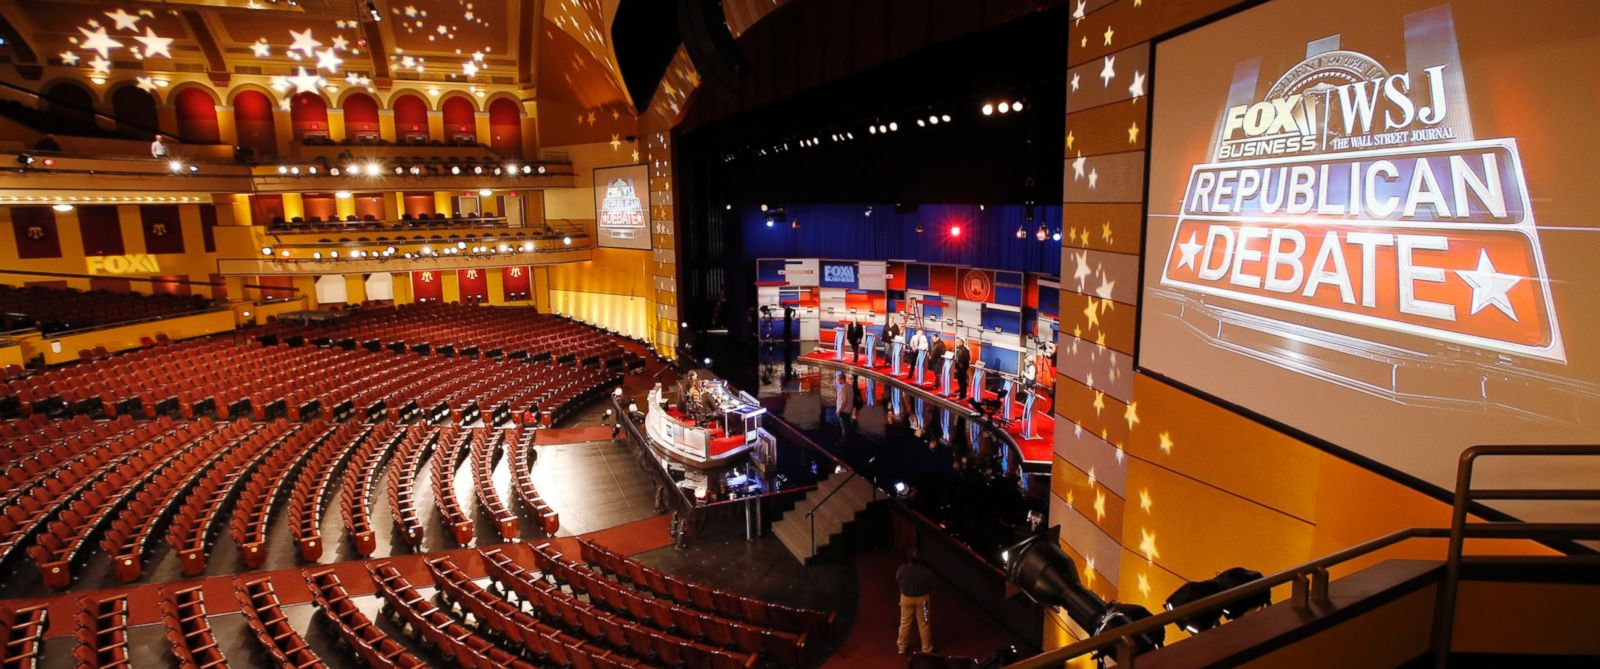 PHOTO: Workers stand in at the candidates podiums on Nov. 9, 2015, in preparation of for Tuesdays Republican debate in Milwaukee.